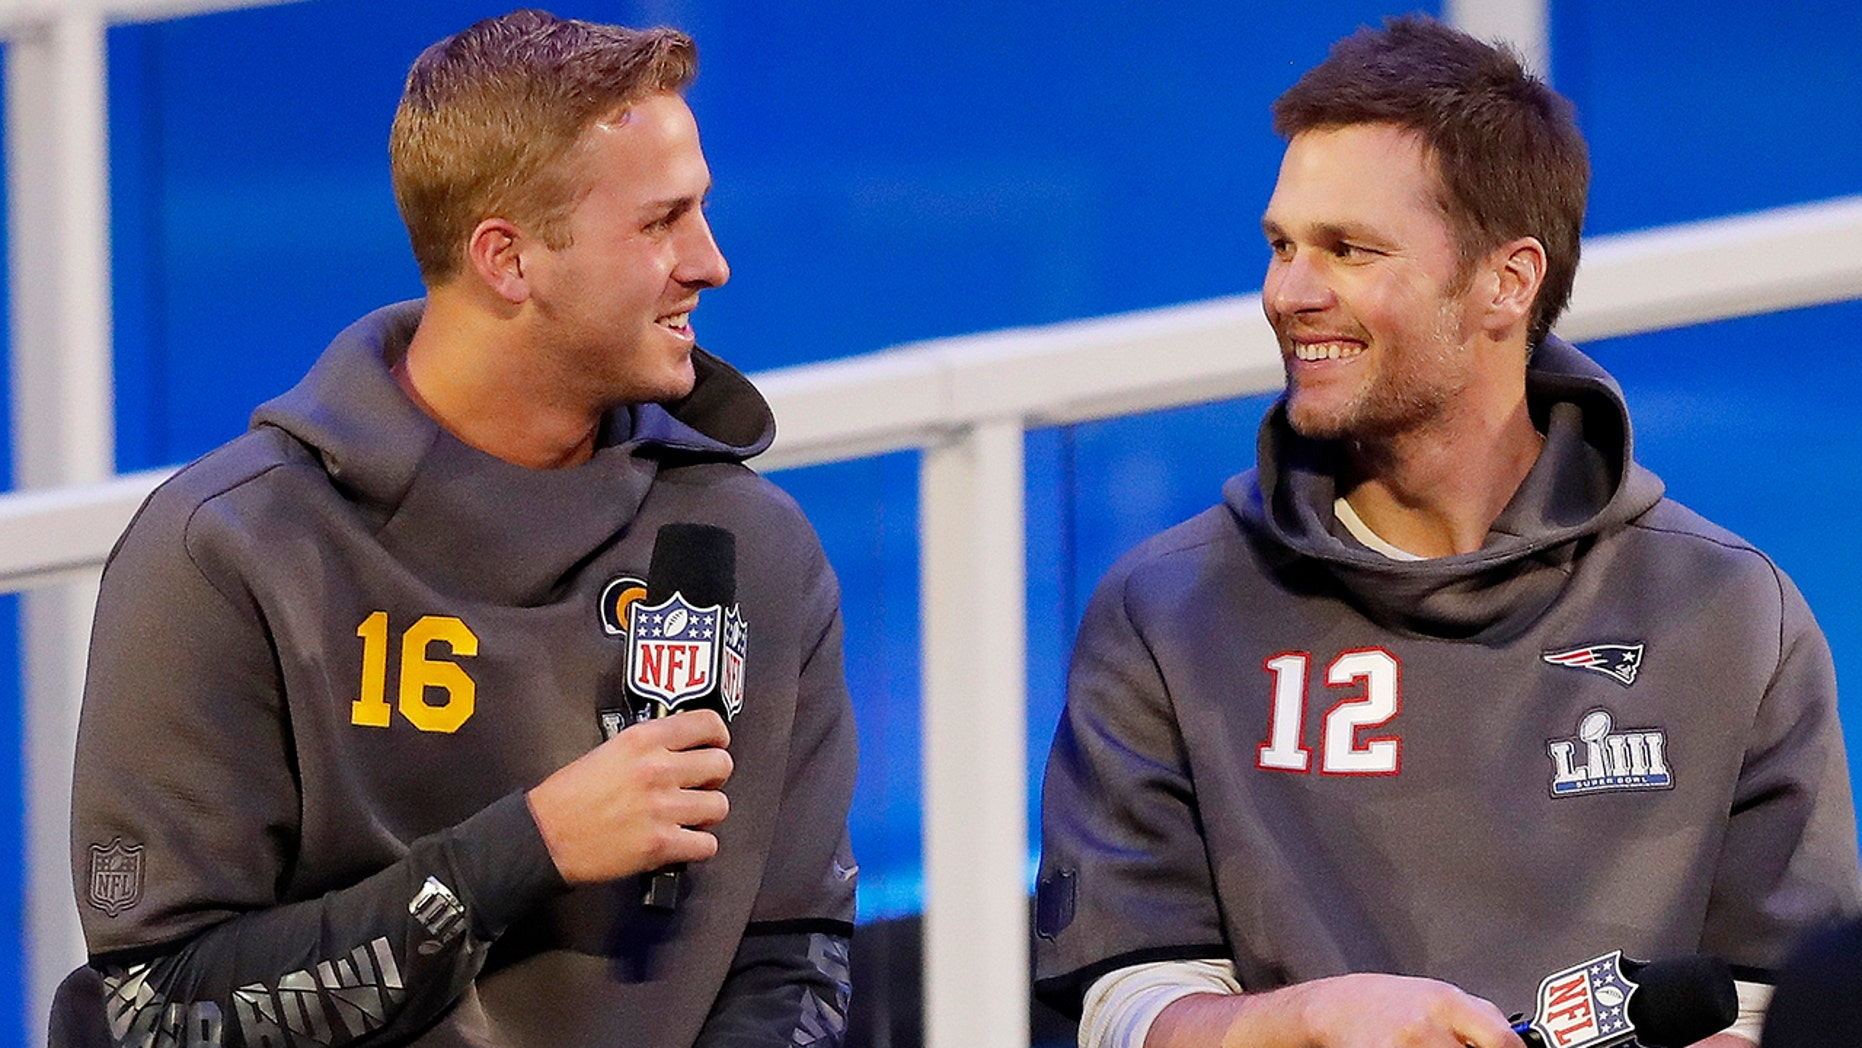 Los Angeles Rams' Jared Goff talks to New England Patriots' Tom Brady during Opening Night for the NFL Super Bowl LIII football game Monday, Jan. 28, 2019, in Atlanta.